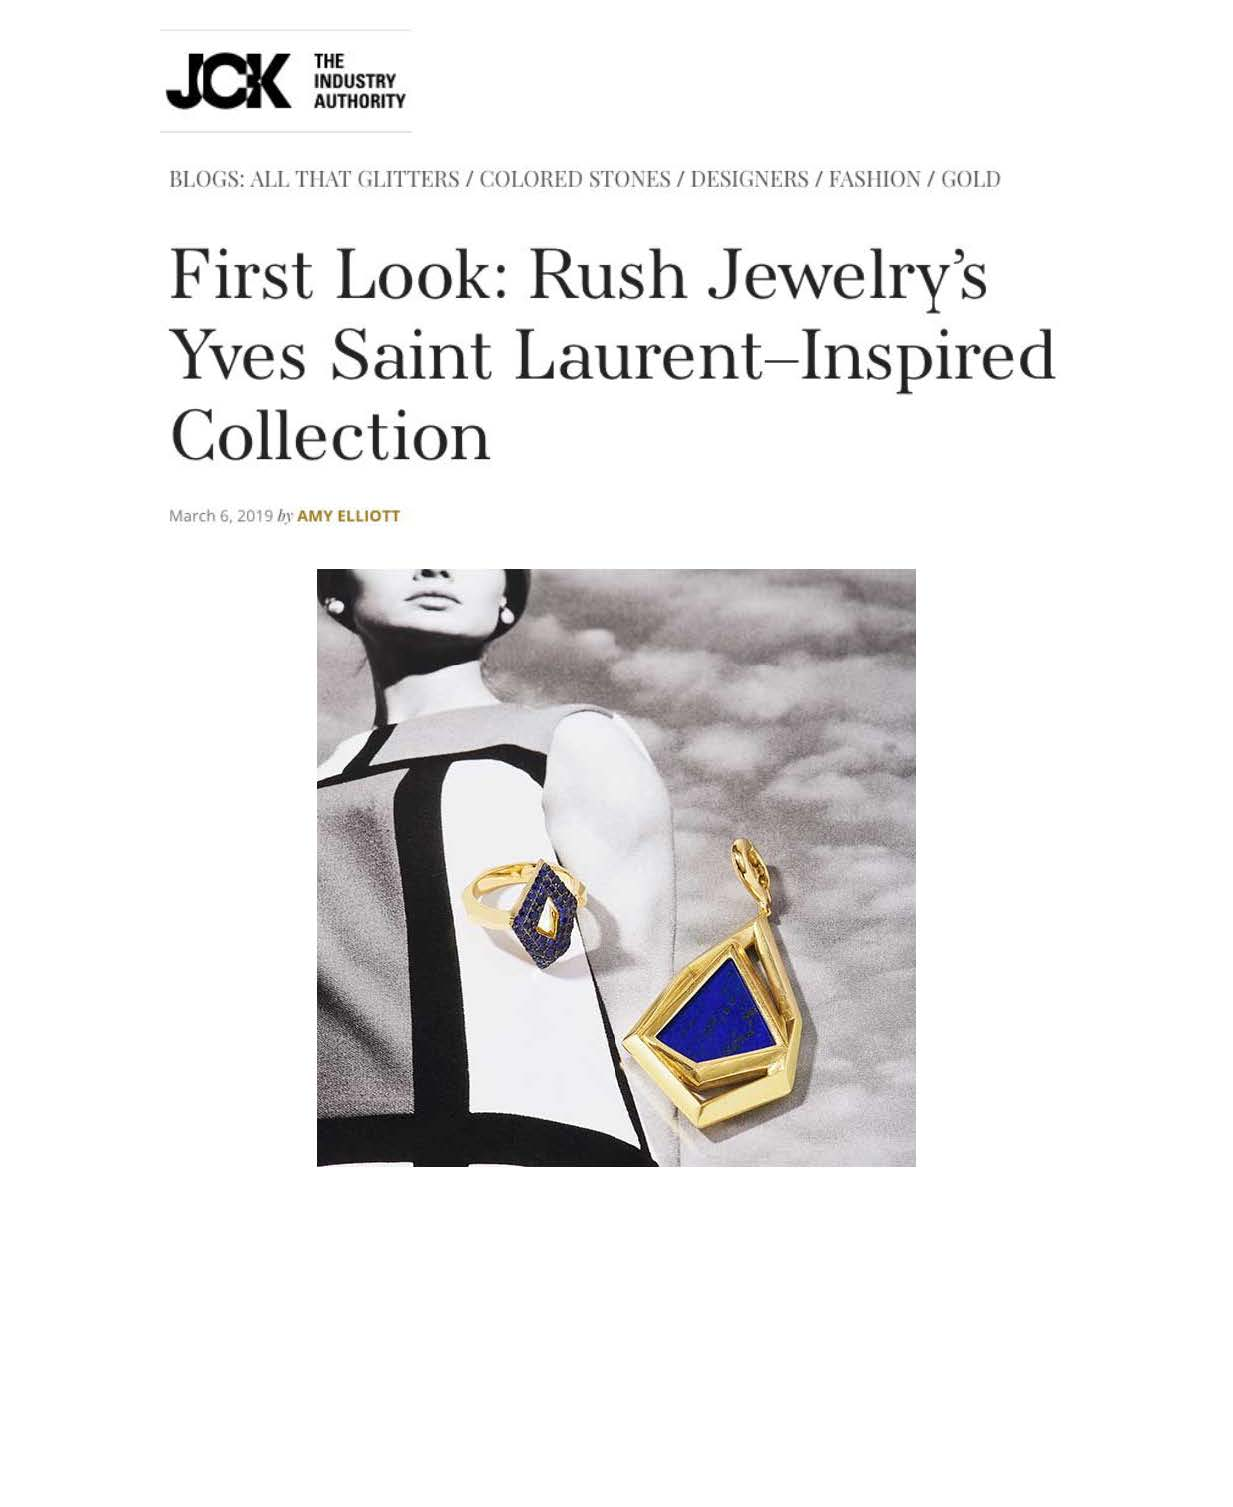 Rush Jewelry Design